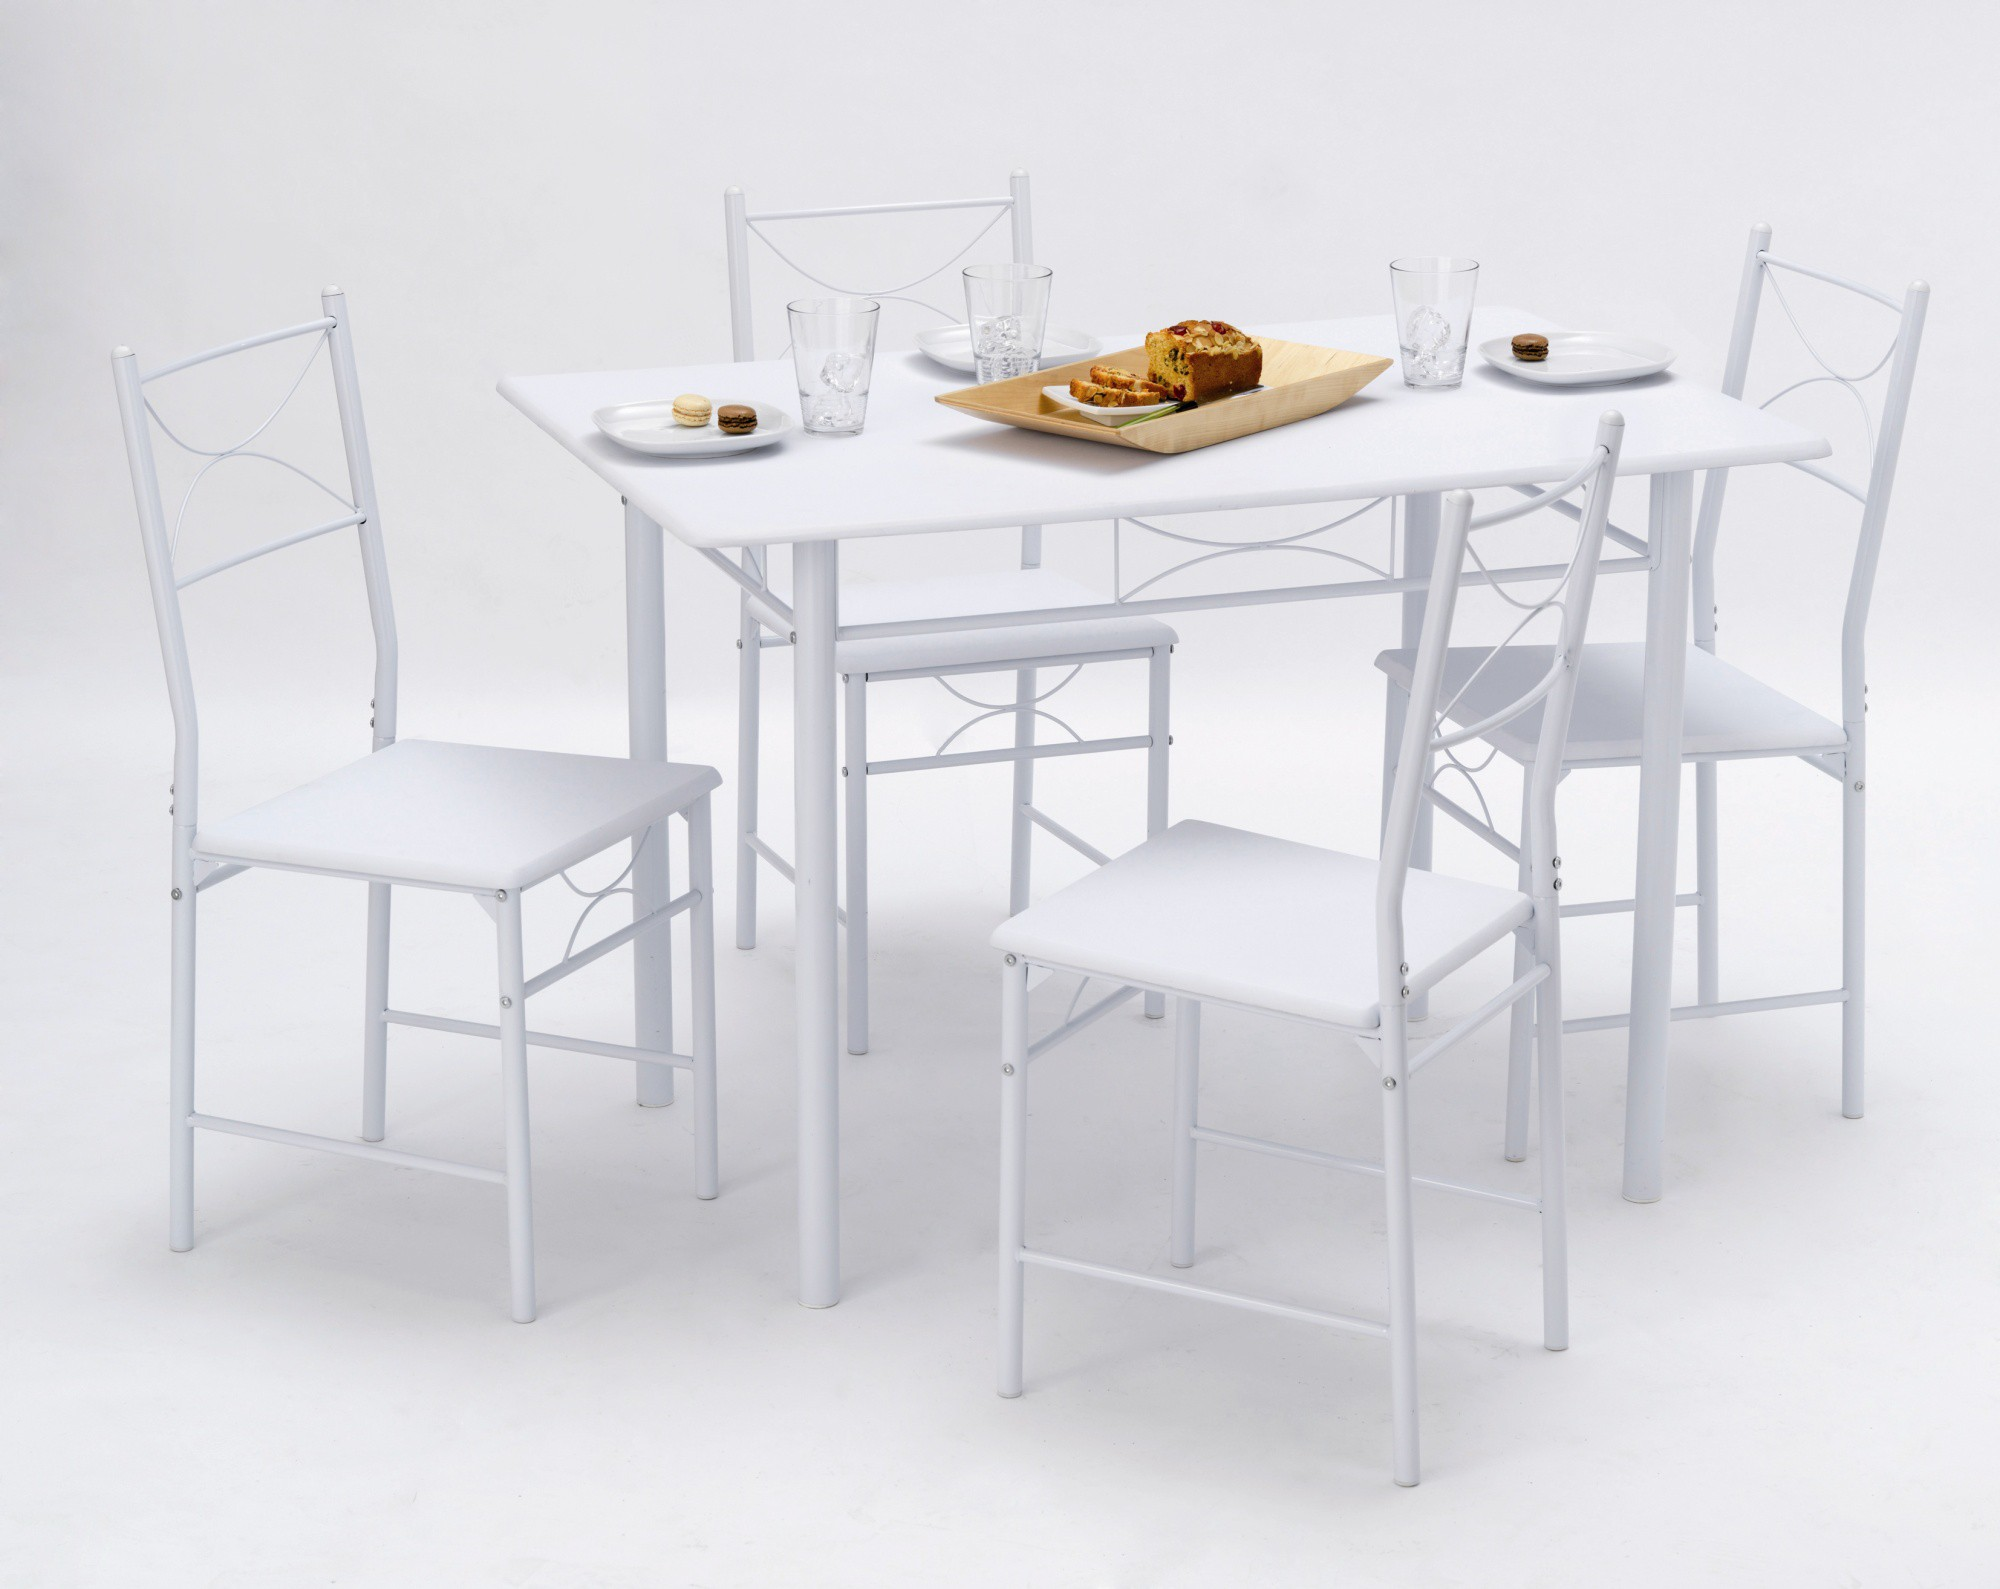 Table et chaise de cuisine moderne le monde de l a for Chaise de cuisine moderne